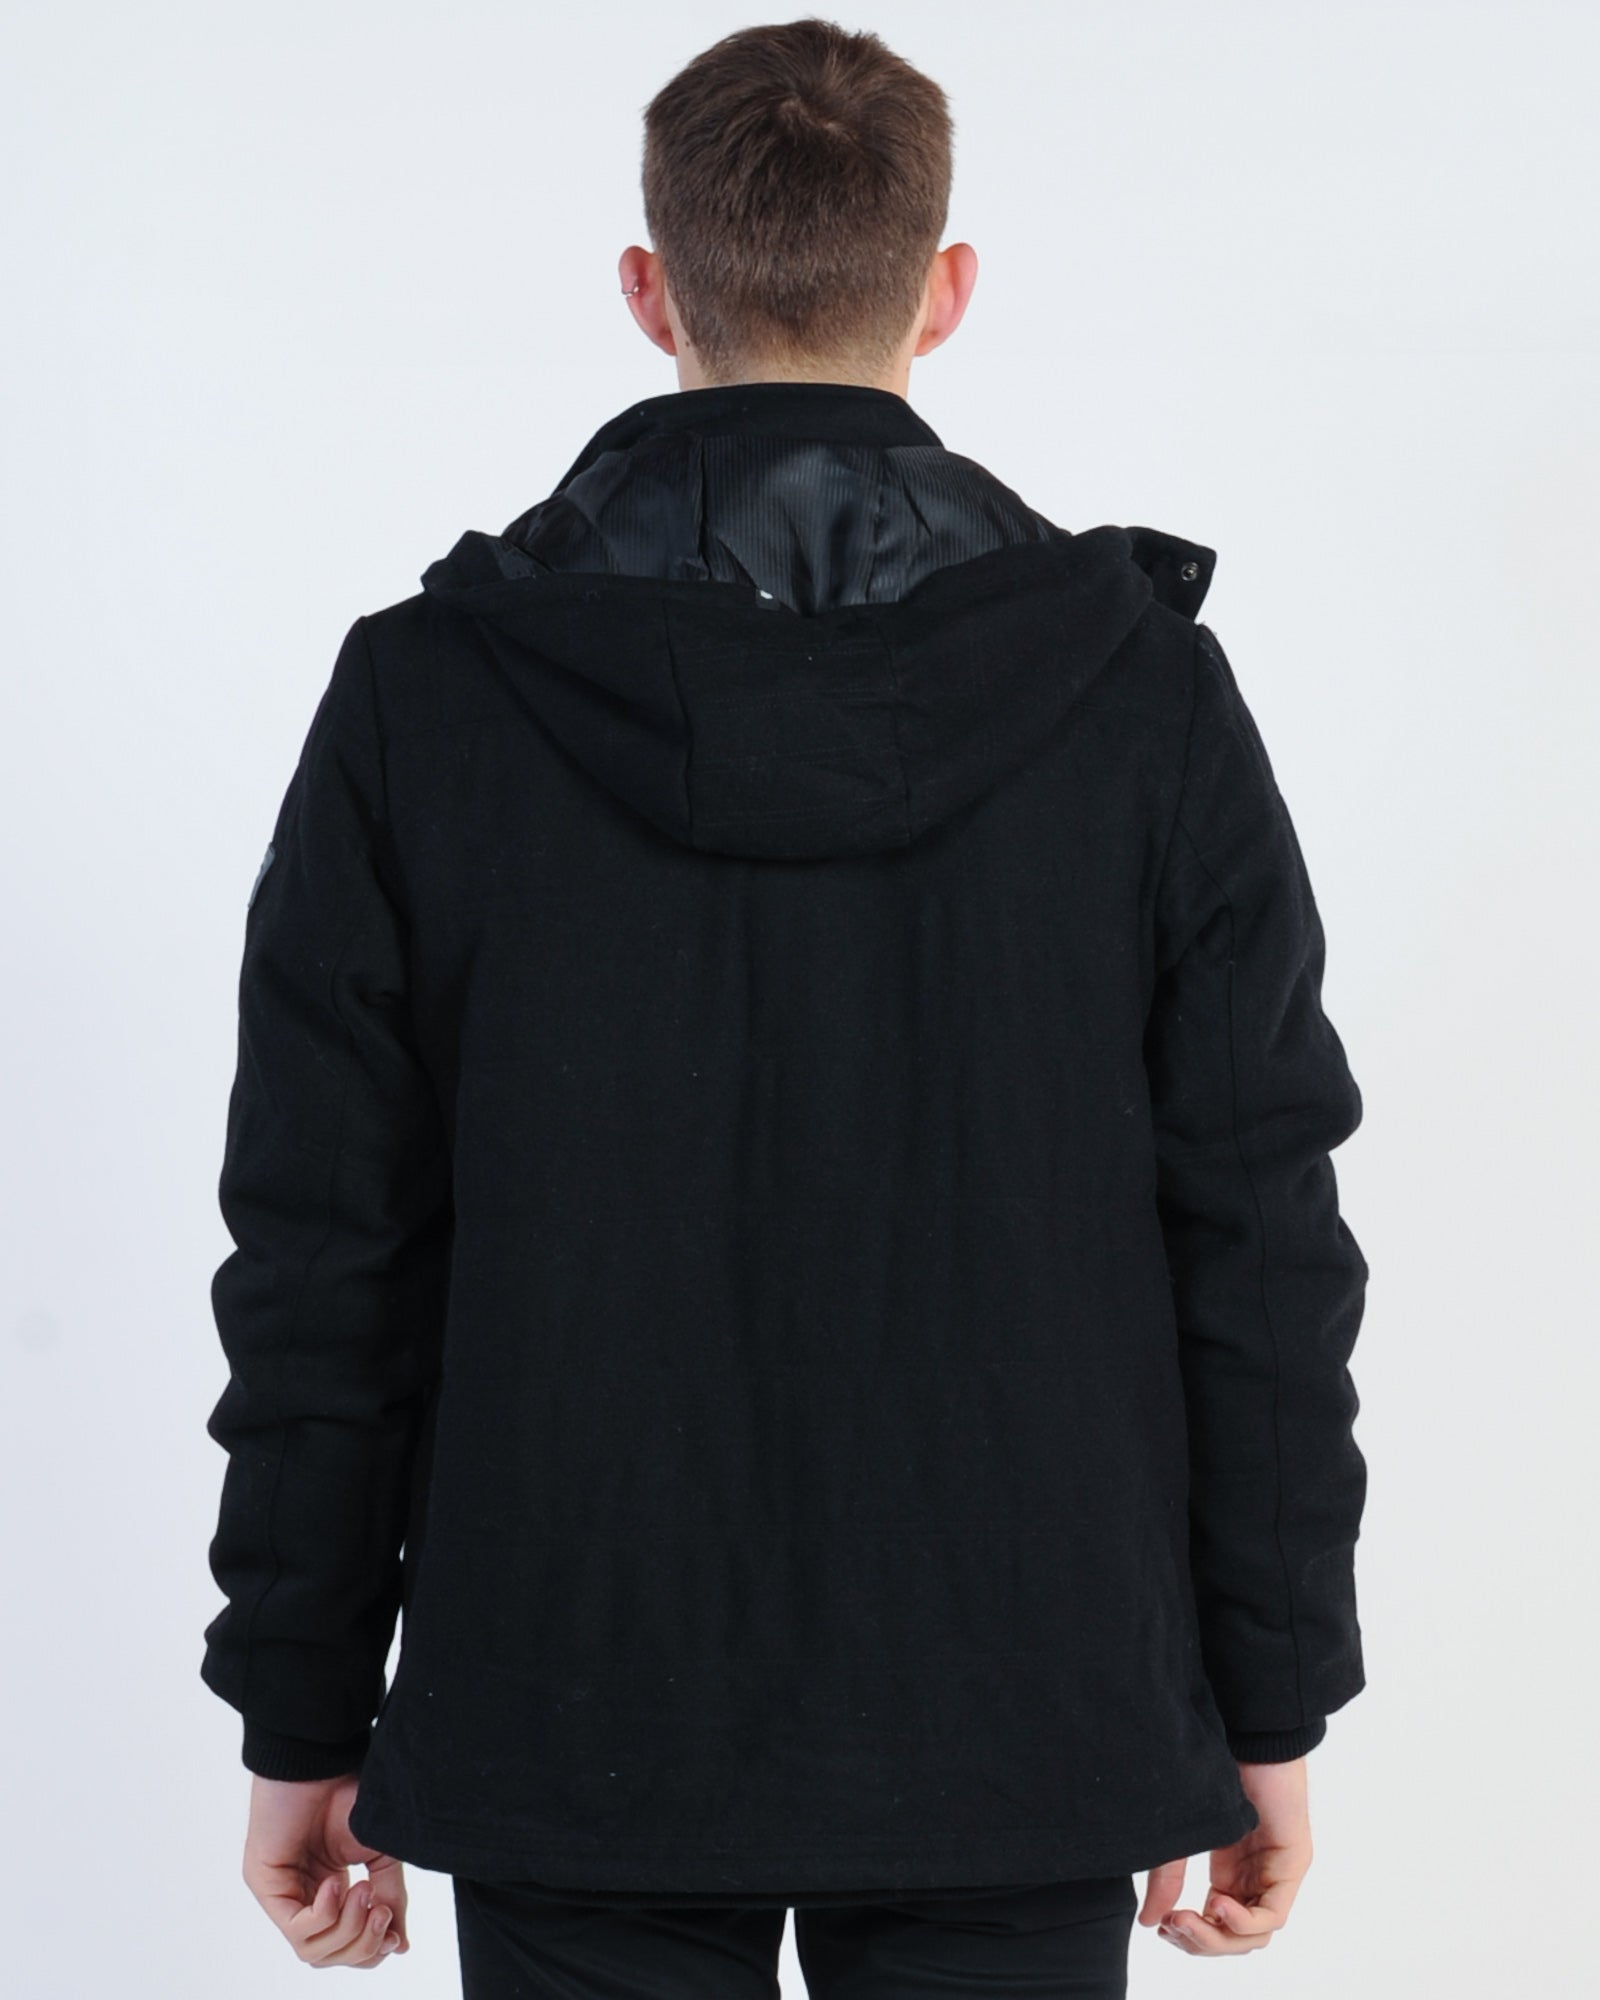 St. Goliath Colonel Hooded Jacket - Black